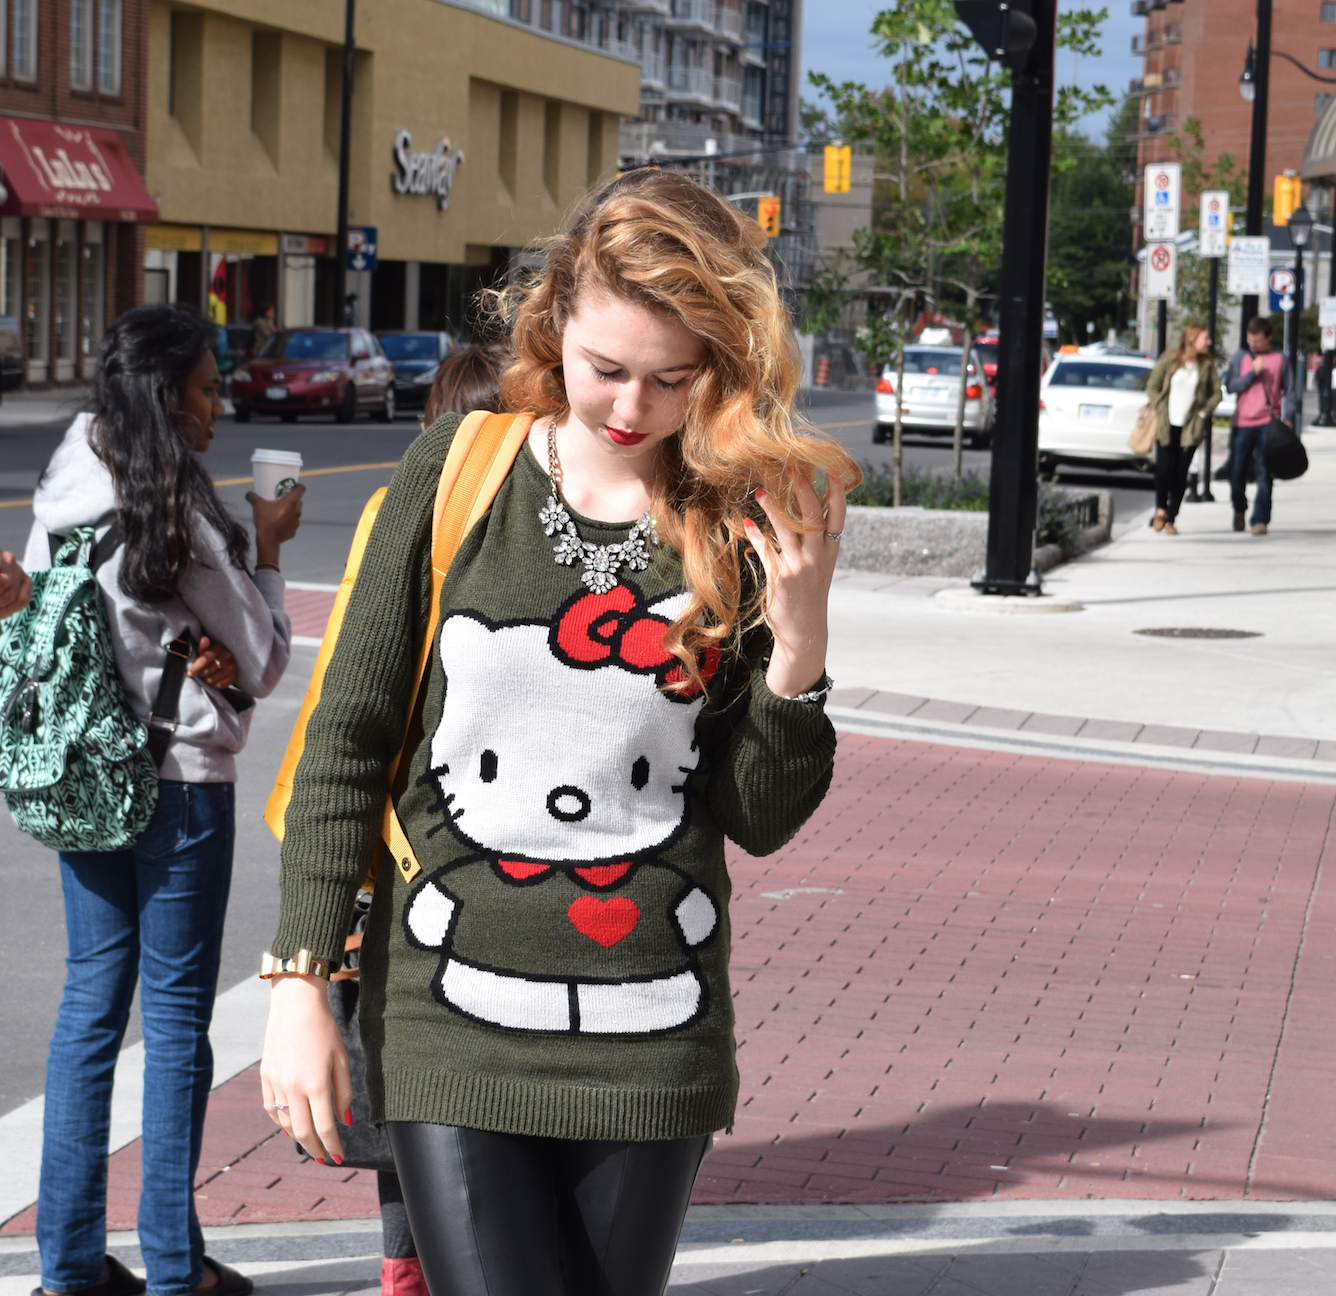 Fashion Beauty Inc: What I Wore: Back To School #OOTD Featuring Hello Kitty